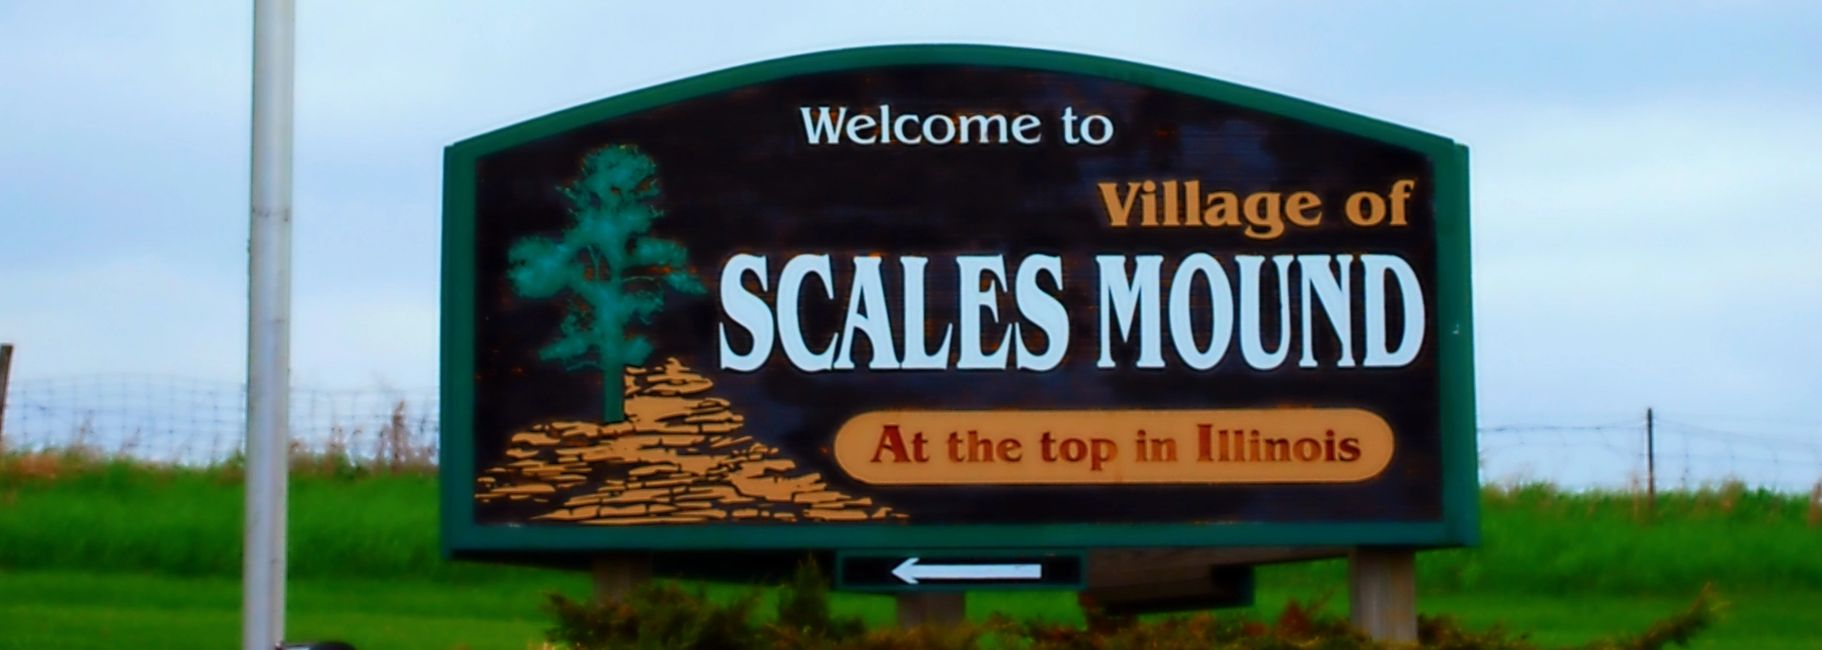 Scales Mound, Scales Mound, IL, plumbing in scales mound, plumbing, plumbers in scales mound,